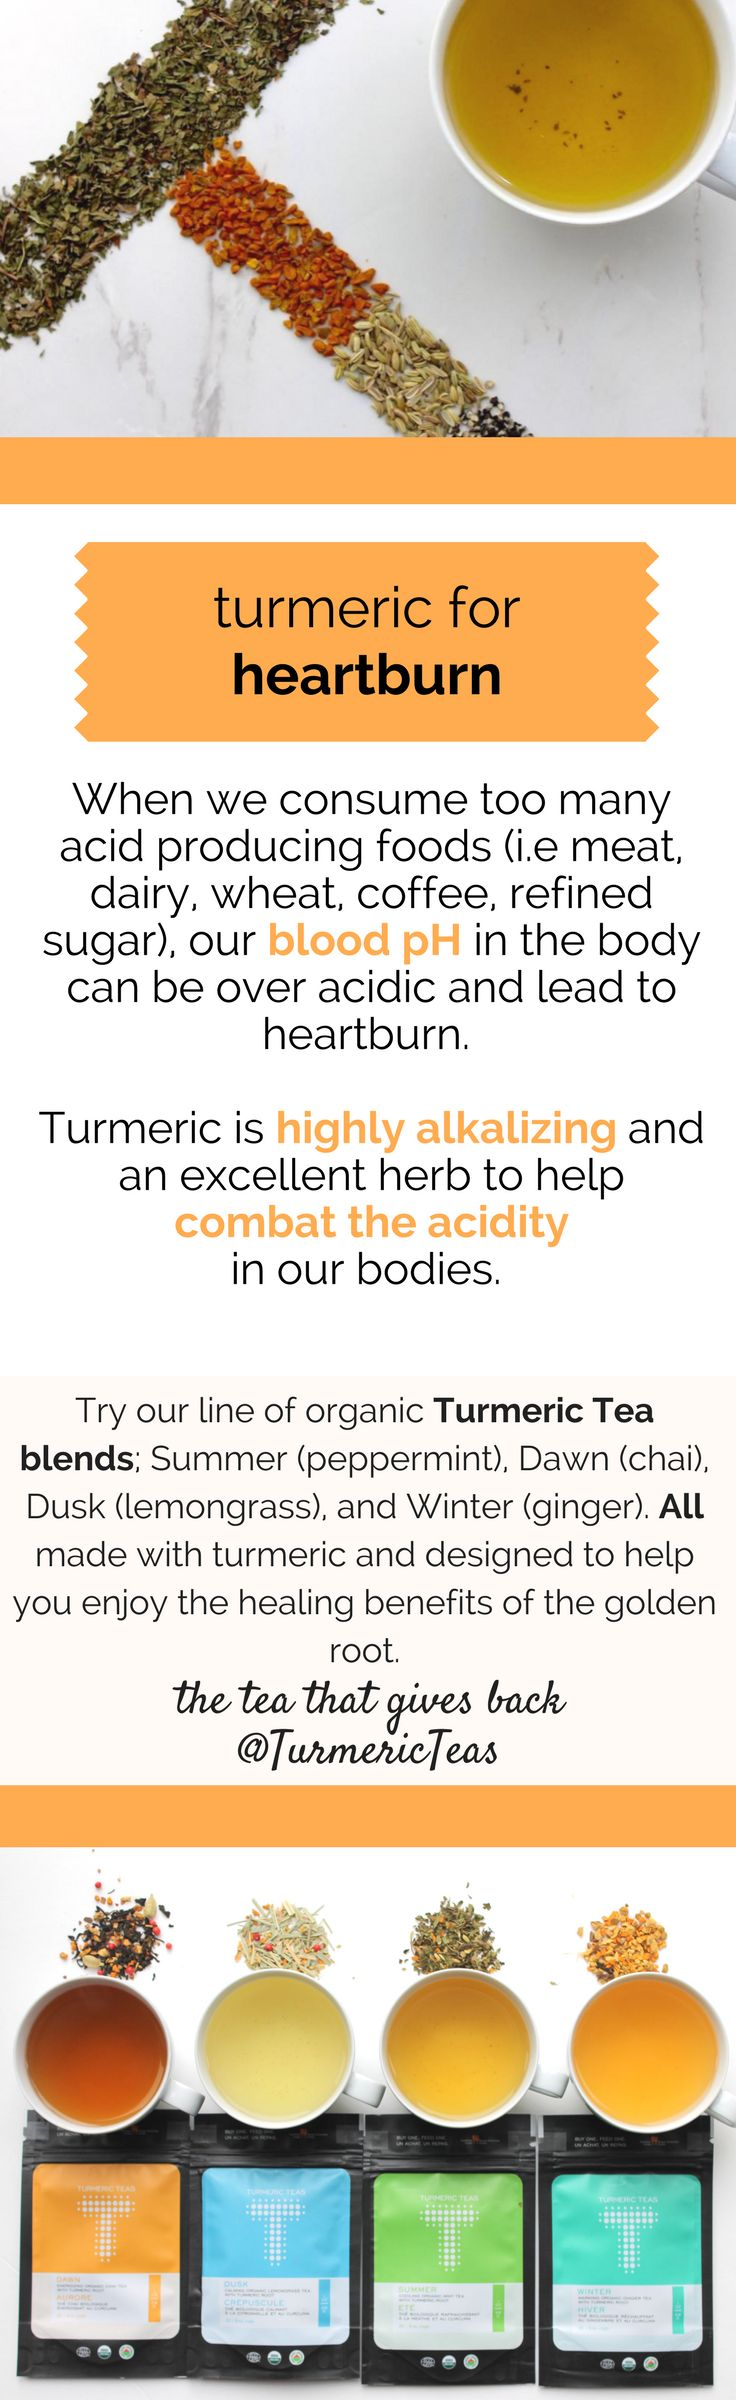 To prevent our blood pH in our bodies to be over acidic, it helps to consume turmeric! Turmeric is highly alkalizing and an excellent herb to help prevent heartburn. Click to read the full blog on our website. #turmeric #turmerichealth #turmericbenefits #turmericteas #turmerictea #heartburnremedy #naturalremedy #heartburn